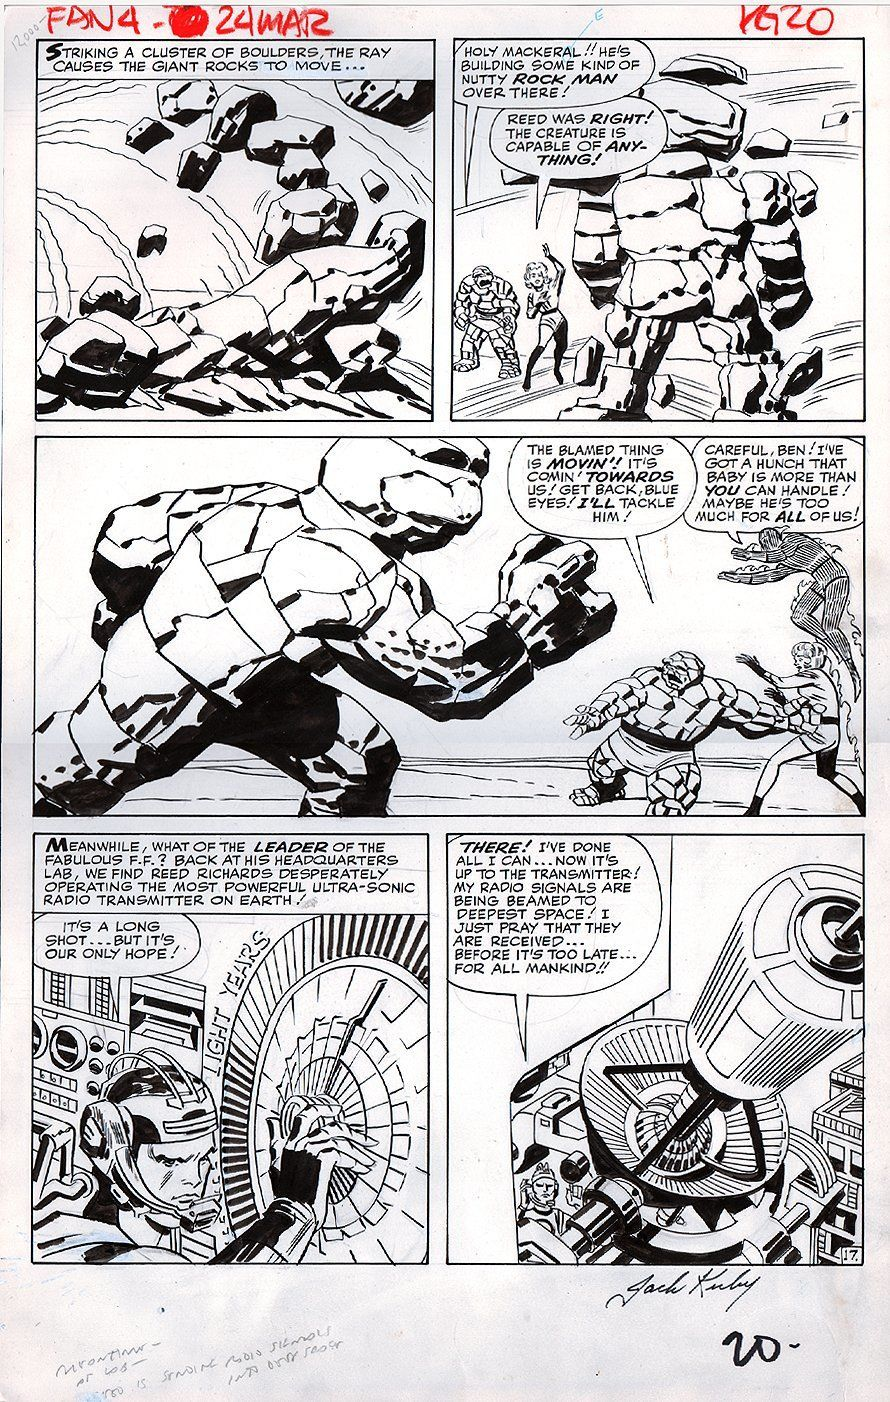 Fantastic Four battle page from issue #24 (1963), which was penciled by Jack Kirby and inked by George Roussos